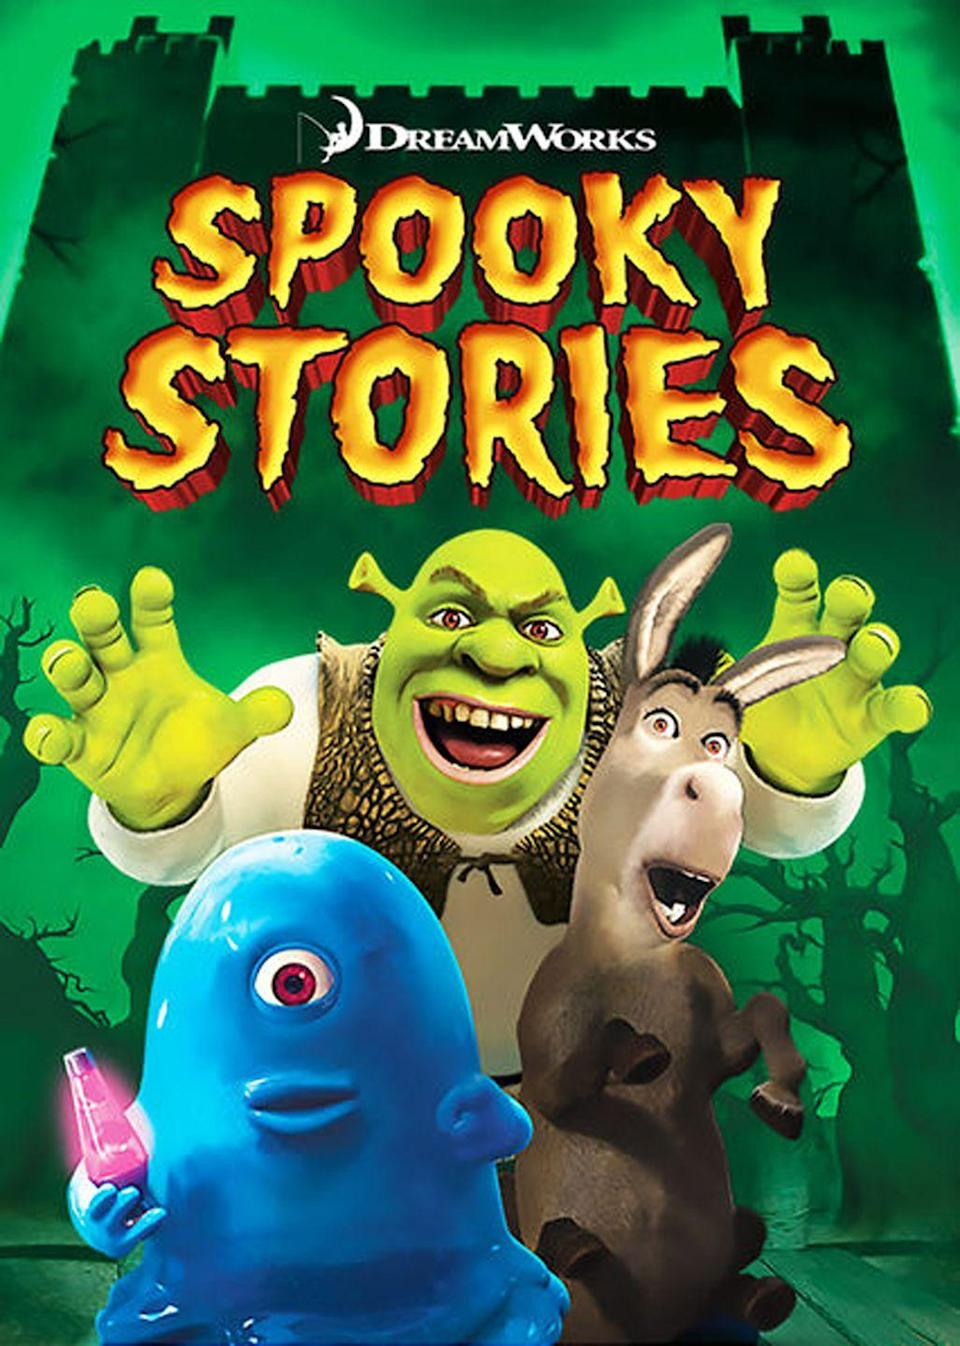 "<p>Shrek, Donkey, and your other favorite characters from the Kingdom of Far Away get together to tell spooky stories.</p><p><a class=""link rapid-noclick-resp"" href=""https://www.netflix.com/watch/70218316"" rel=""nofollow noopener"" target=""_blank"" data-ylk=""slk:WATCH NOW"">WATCH NOW</a></p>"